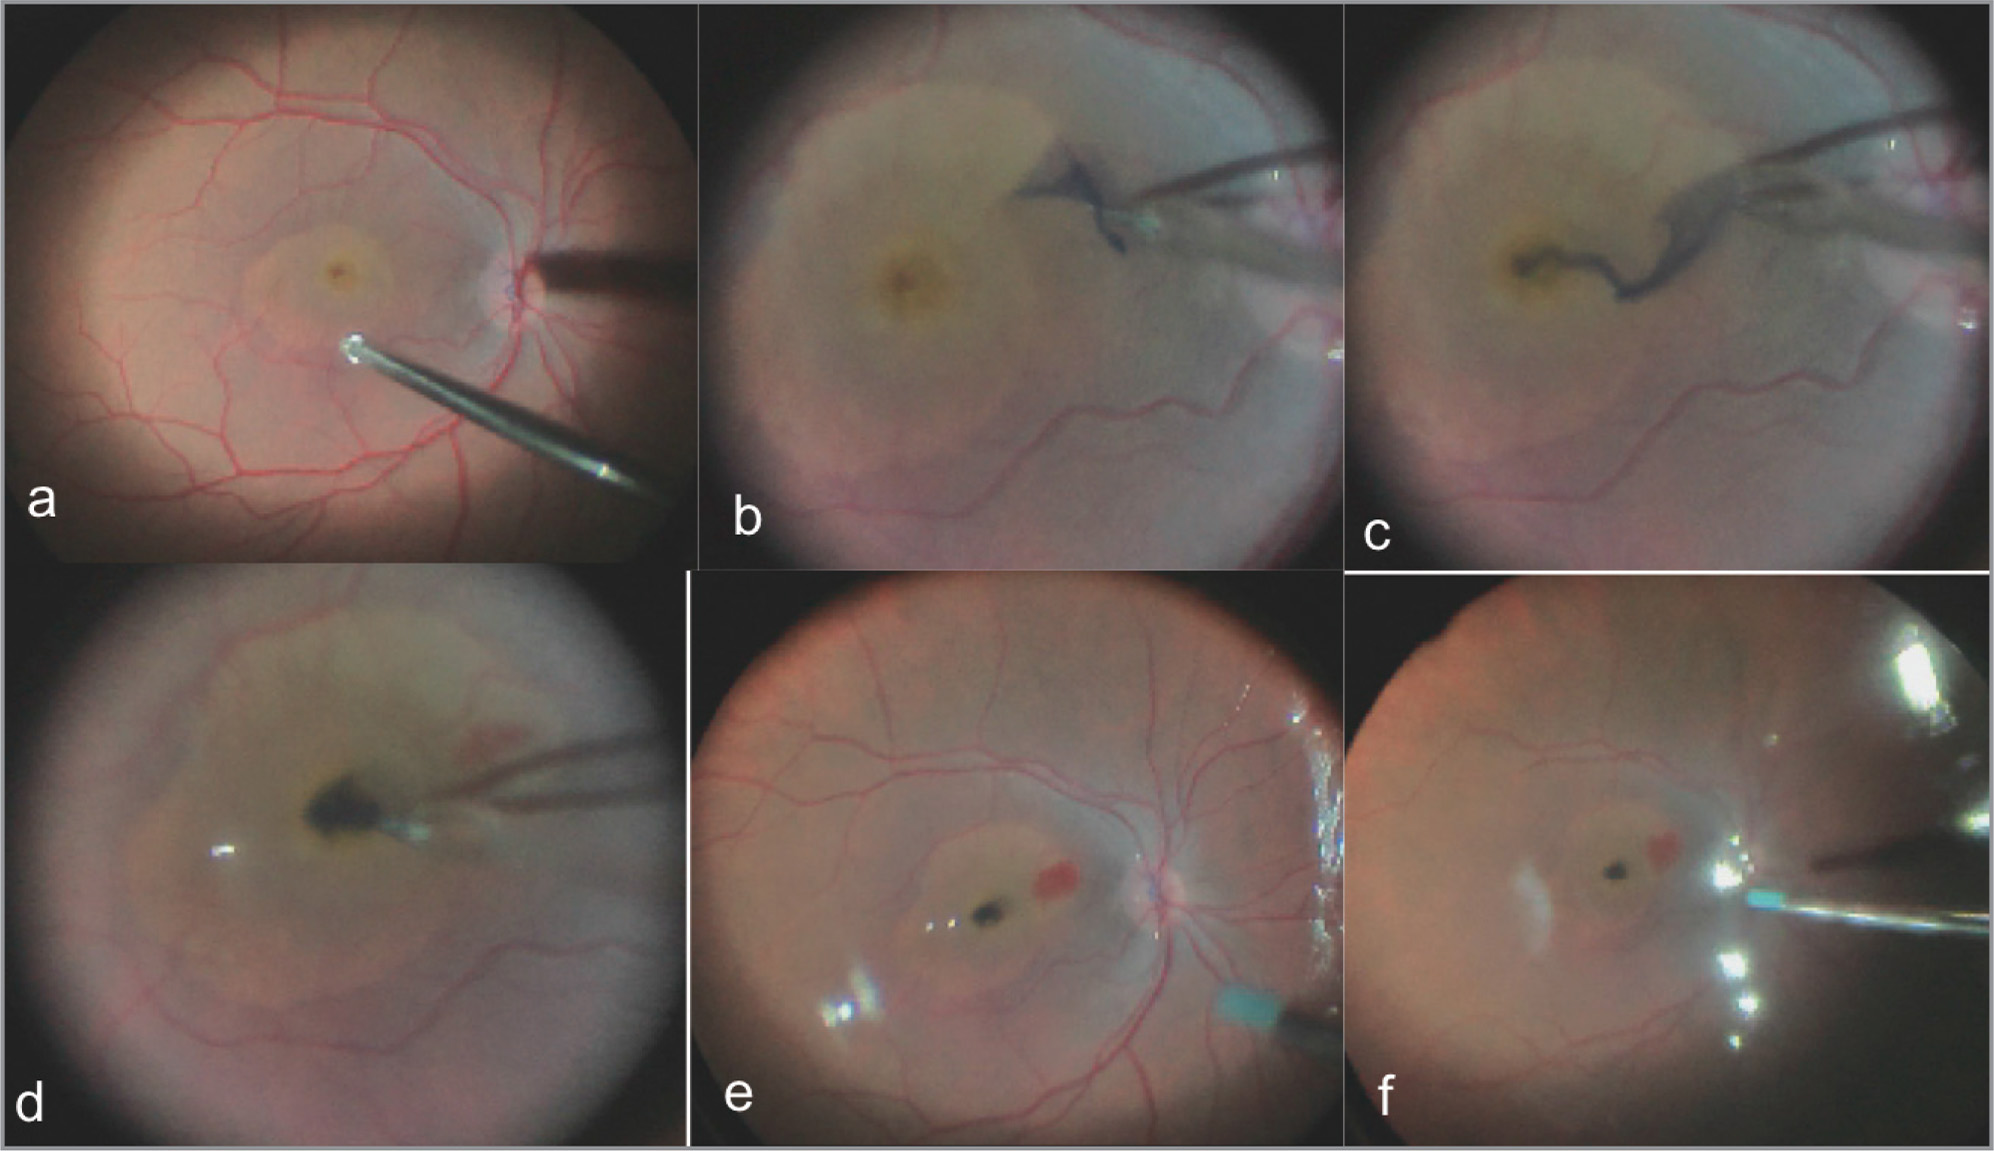 A modified perfluoro-n-octane (PFO)-assisted free flap internal limiting membrane (ILM) transplantation technique (Case 3). (A) Pre-peeled ILM edge following Brilliant Blue G staining. (B) Harvesting an ILM flap under PFO. (C) Placing the free edge of flap over macular hole (MH) under PFO. (D) Converting the flap into a completely free ILM graft by releasing the hinge. (E) Free ILM flap into MH under PFO (dark blue colored). (F) ILM flap in situ after fluid-air exchange.